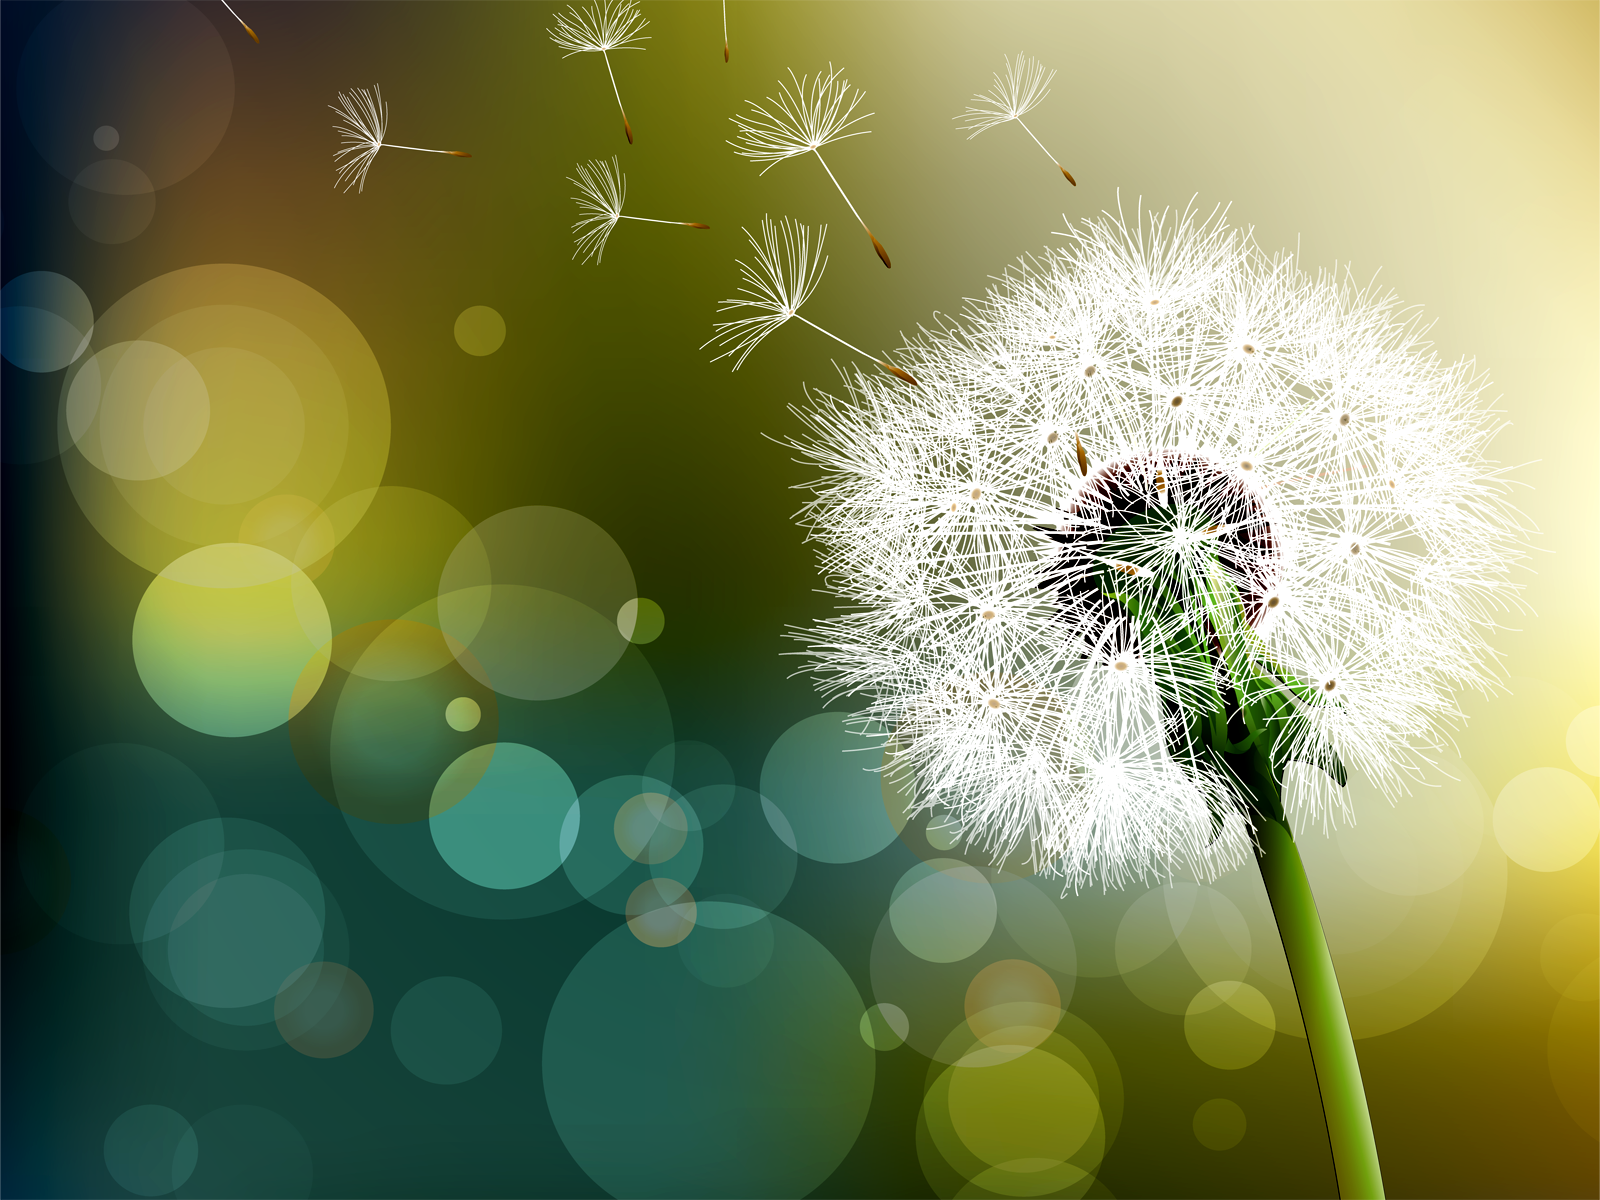 HDQ Wallpapers Dandelion Images For Desktop Free Download AFB HDQ